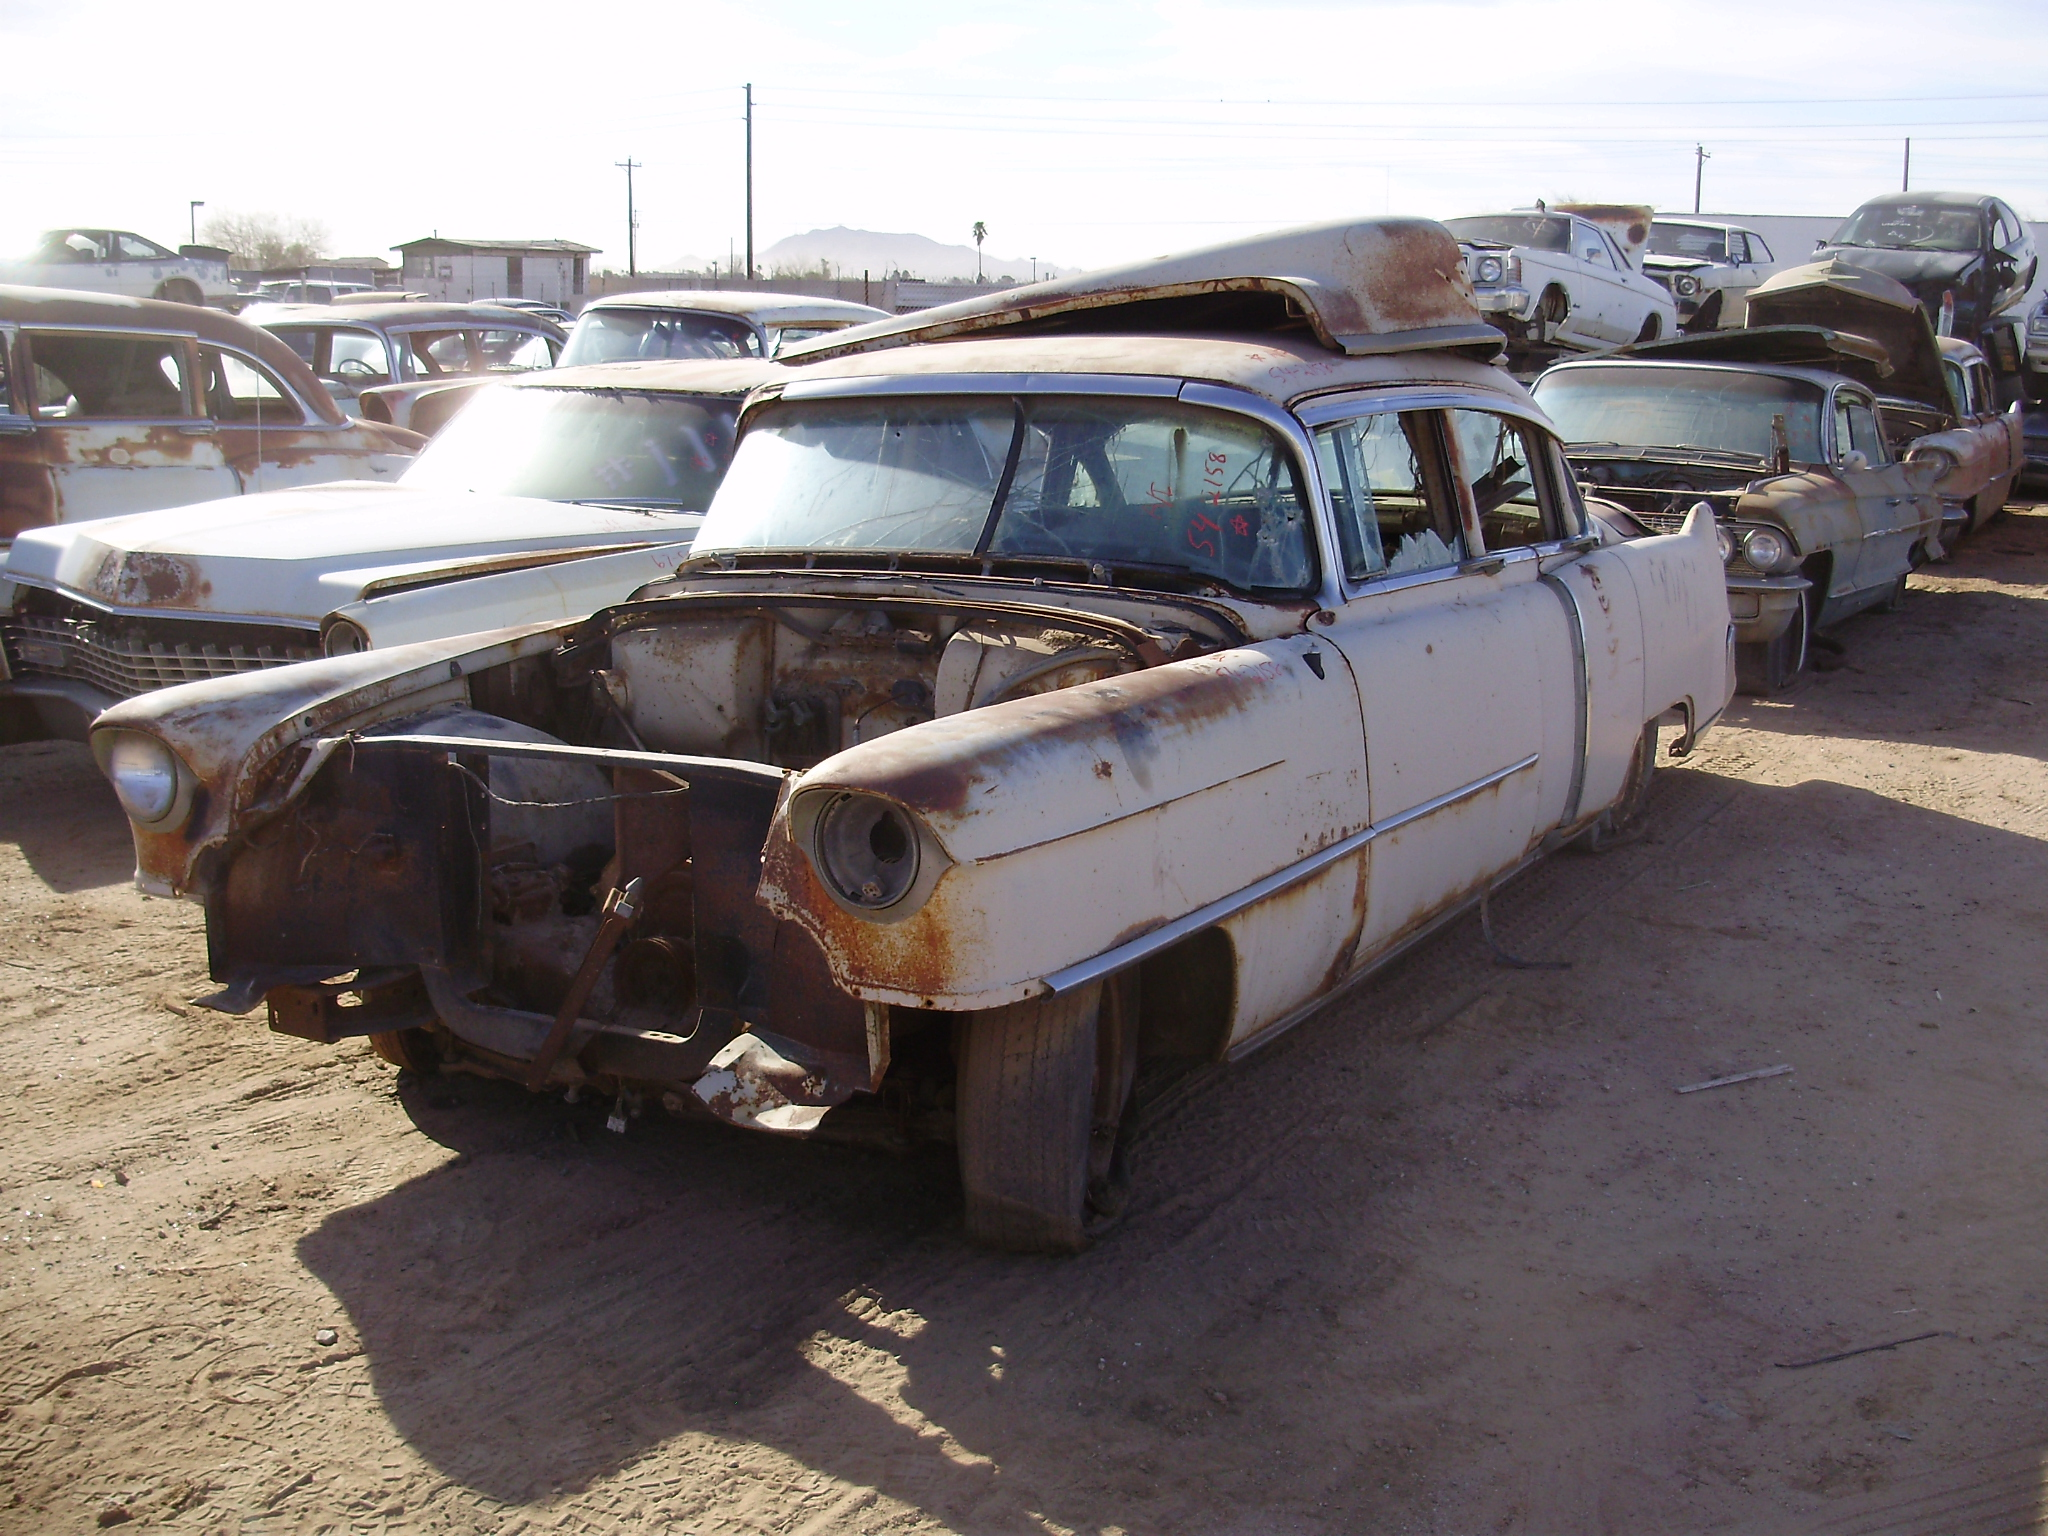 Search Results Desert Valley Auto Parts 1954 Cadillac Coupe Deville Fleetwood 54ca2158c